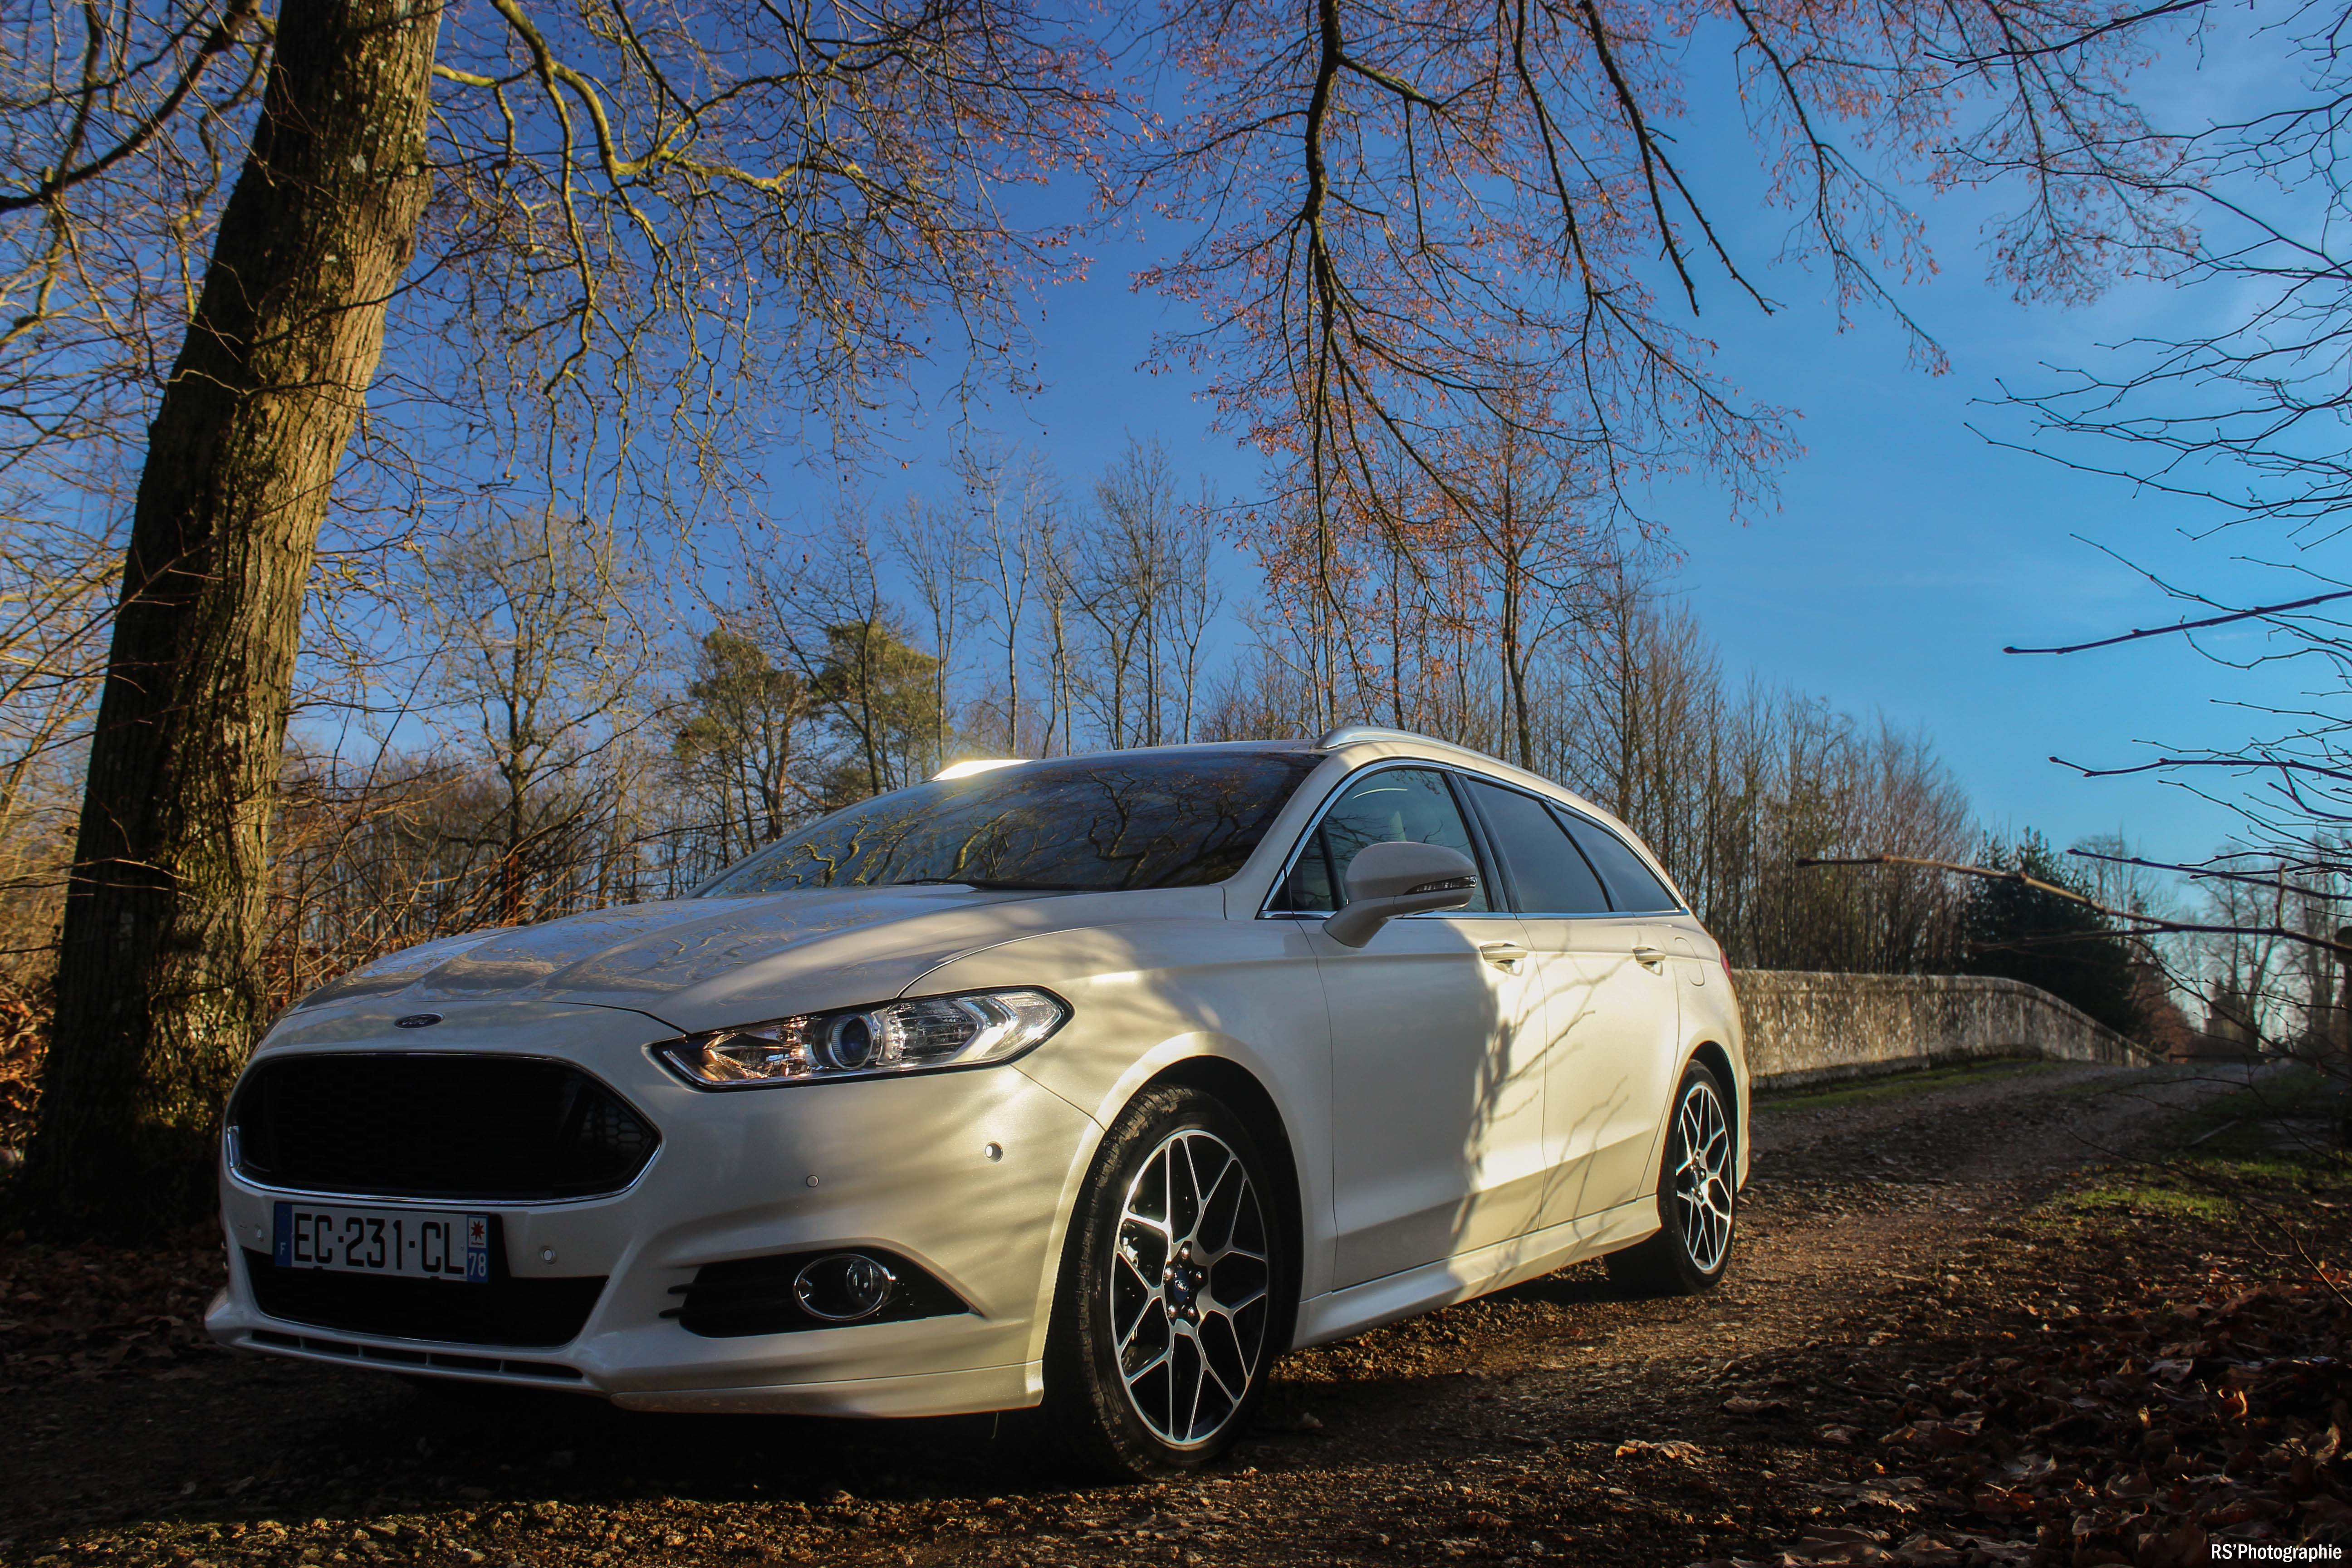 FordMondeoSW10-ford-mondeo-sw-180-profil-side face-arnaud-demasier-rsphotographie